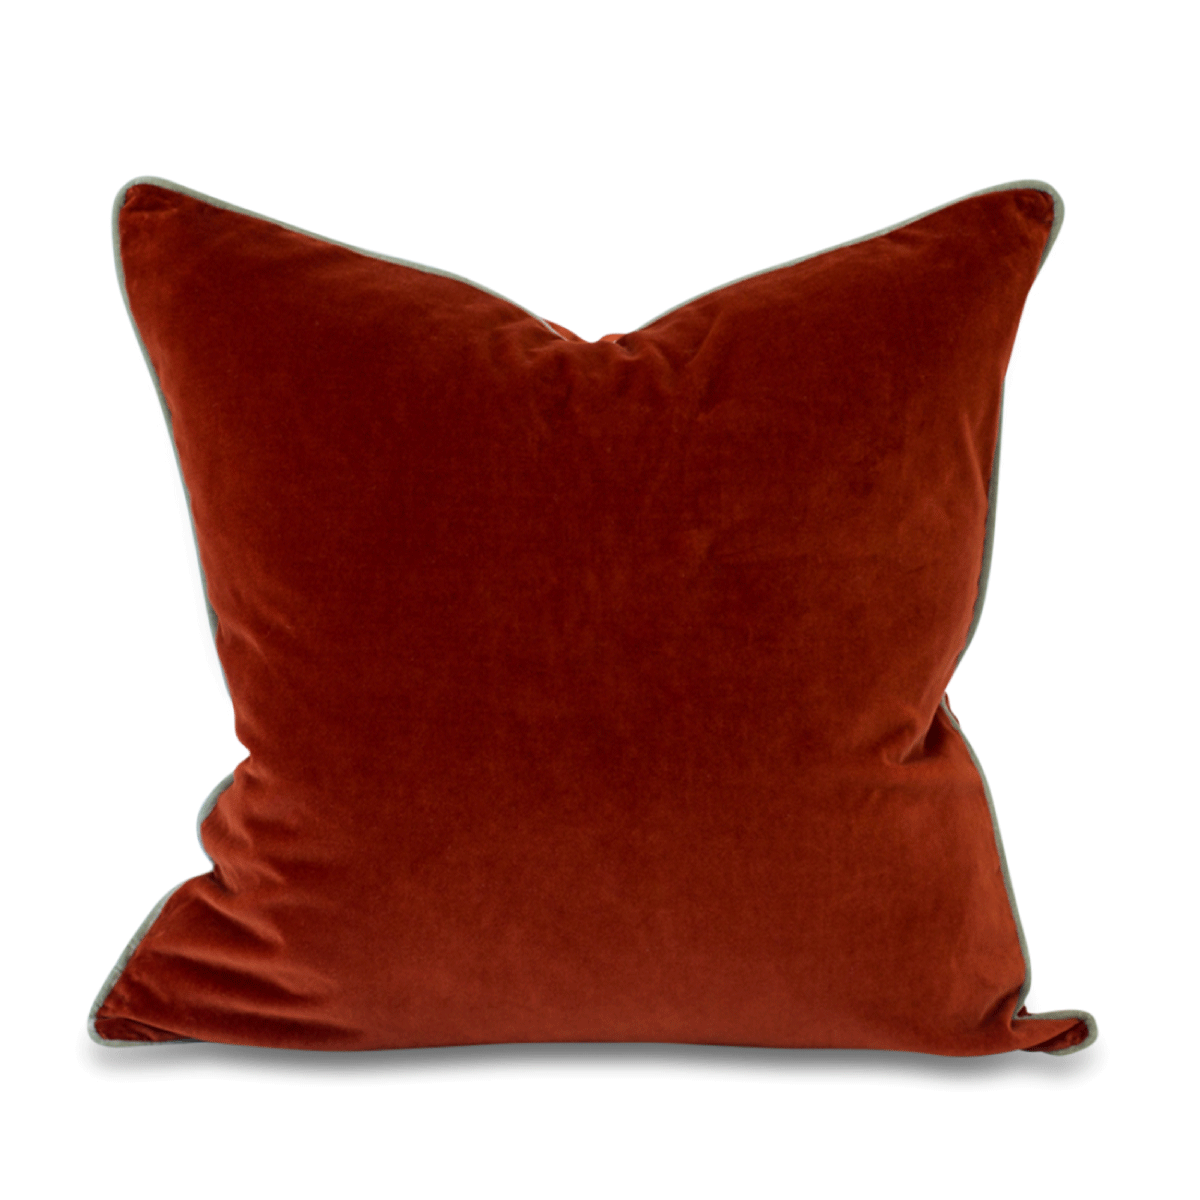 Chloe Velvet Pillow - Terra Cotta + Mint